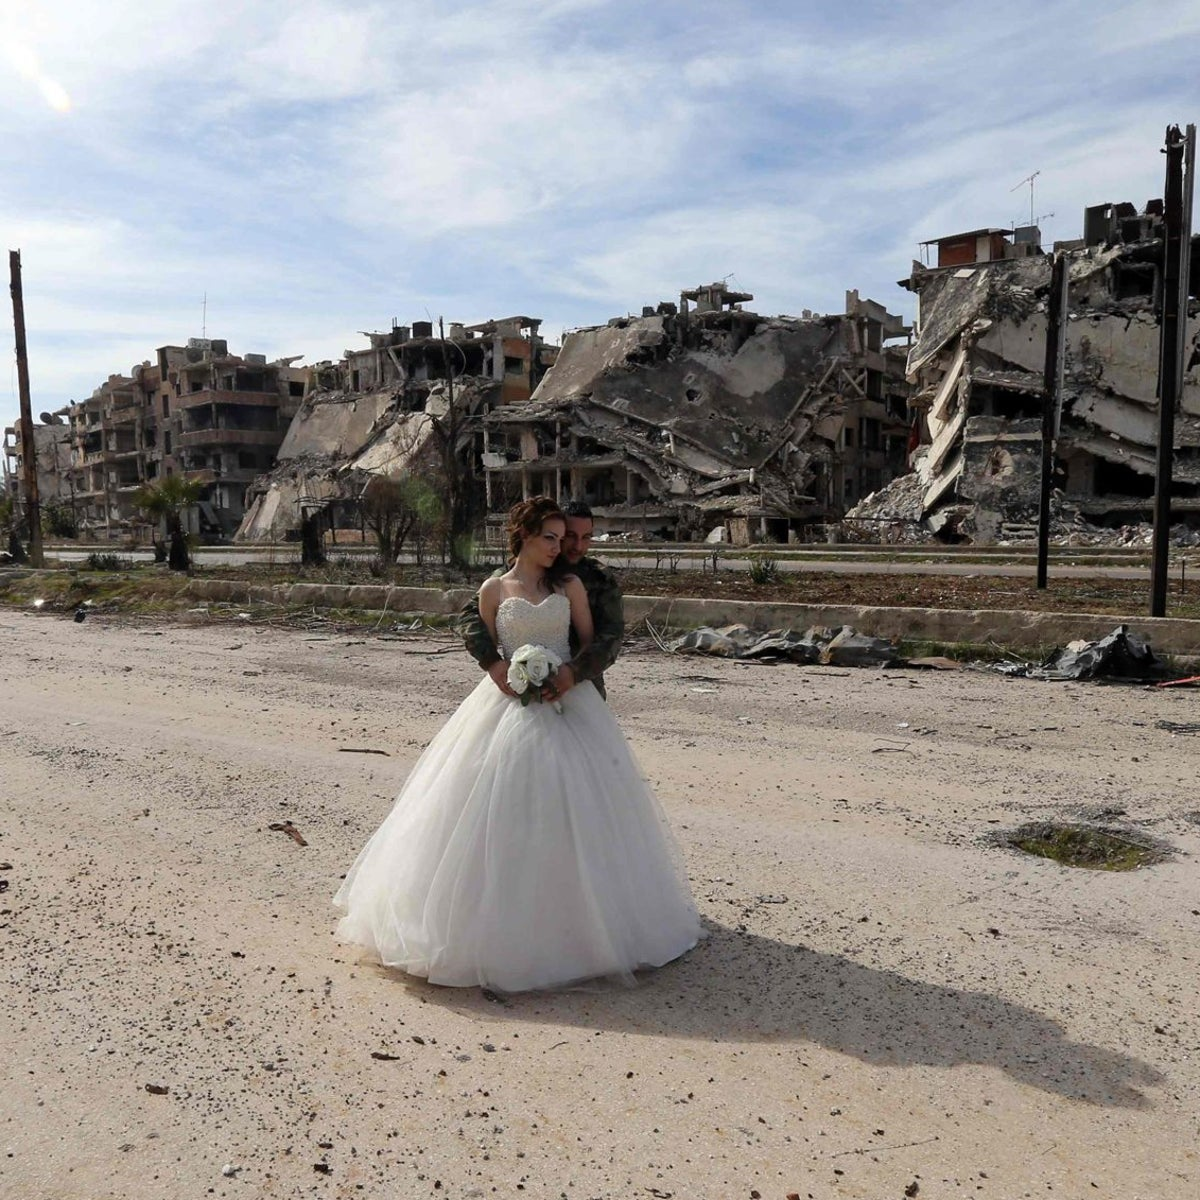 Nada Merhi and Hassan Youssef pose for wedding photos against the background of Homs, Syria, on February 5, 2016.